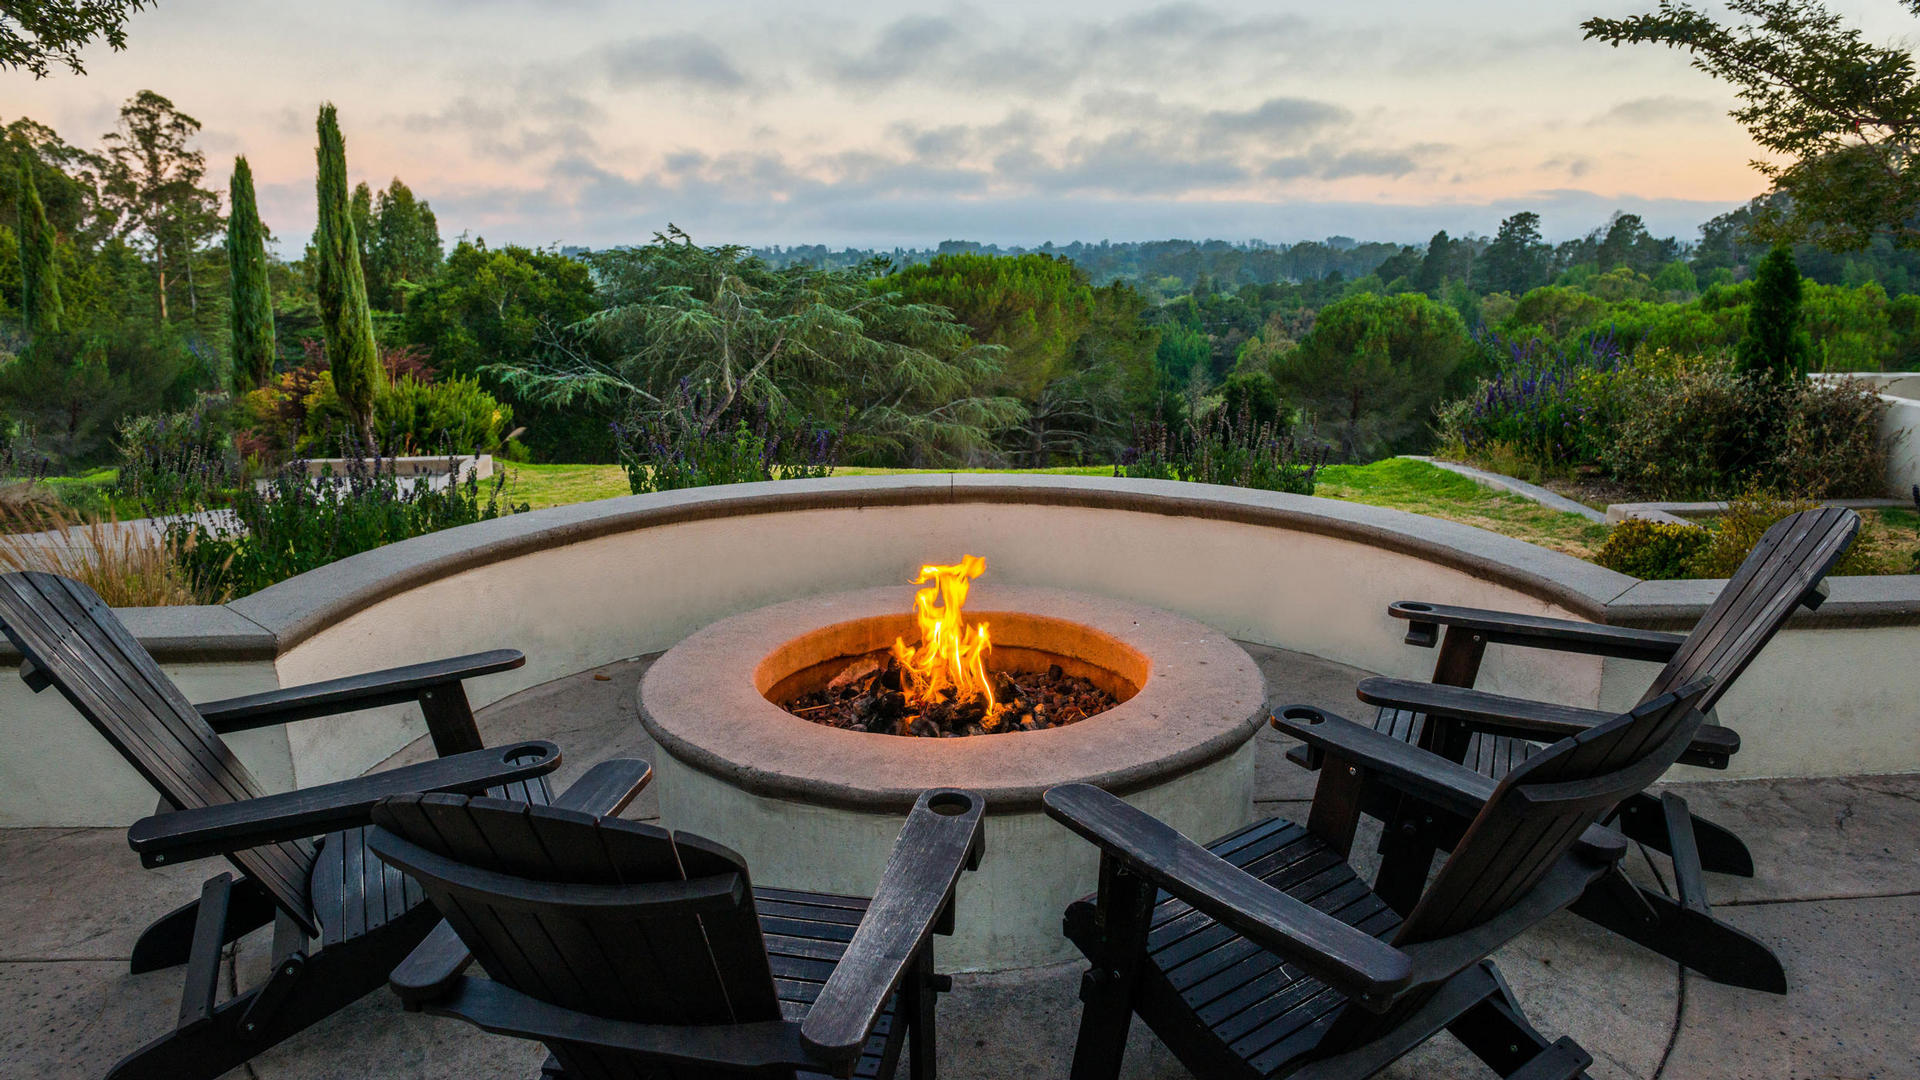 Chaminade fire pit